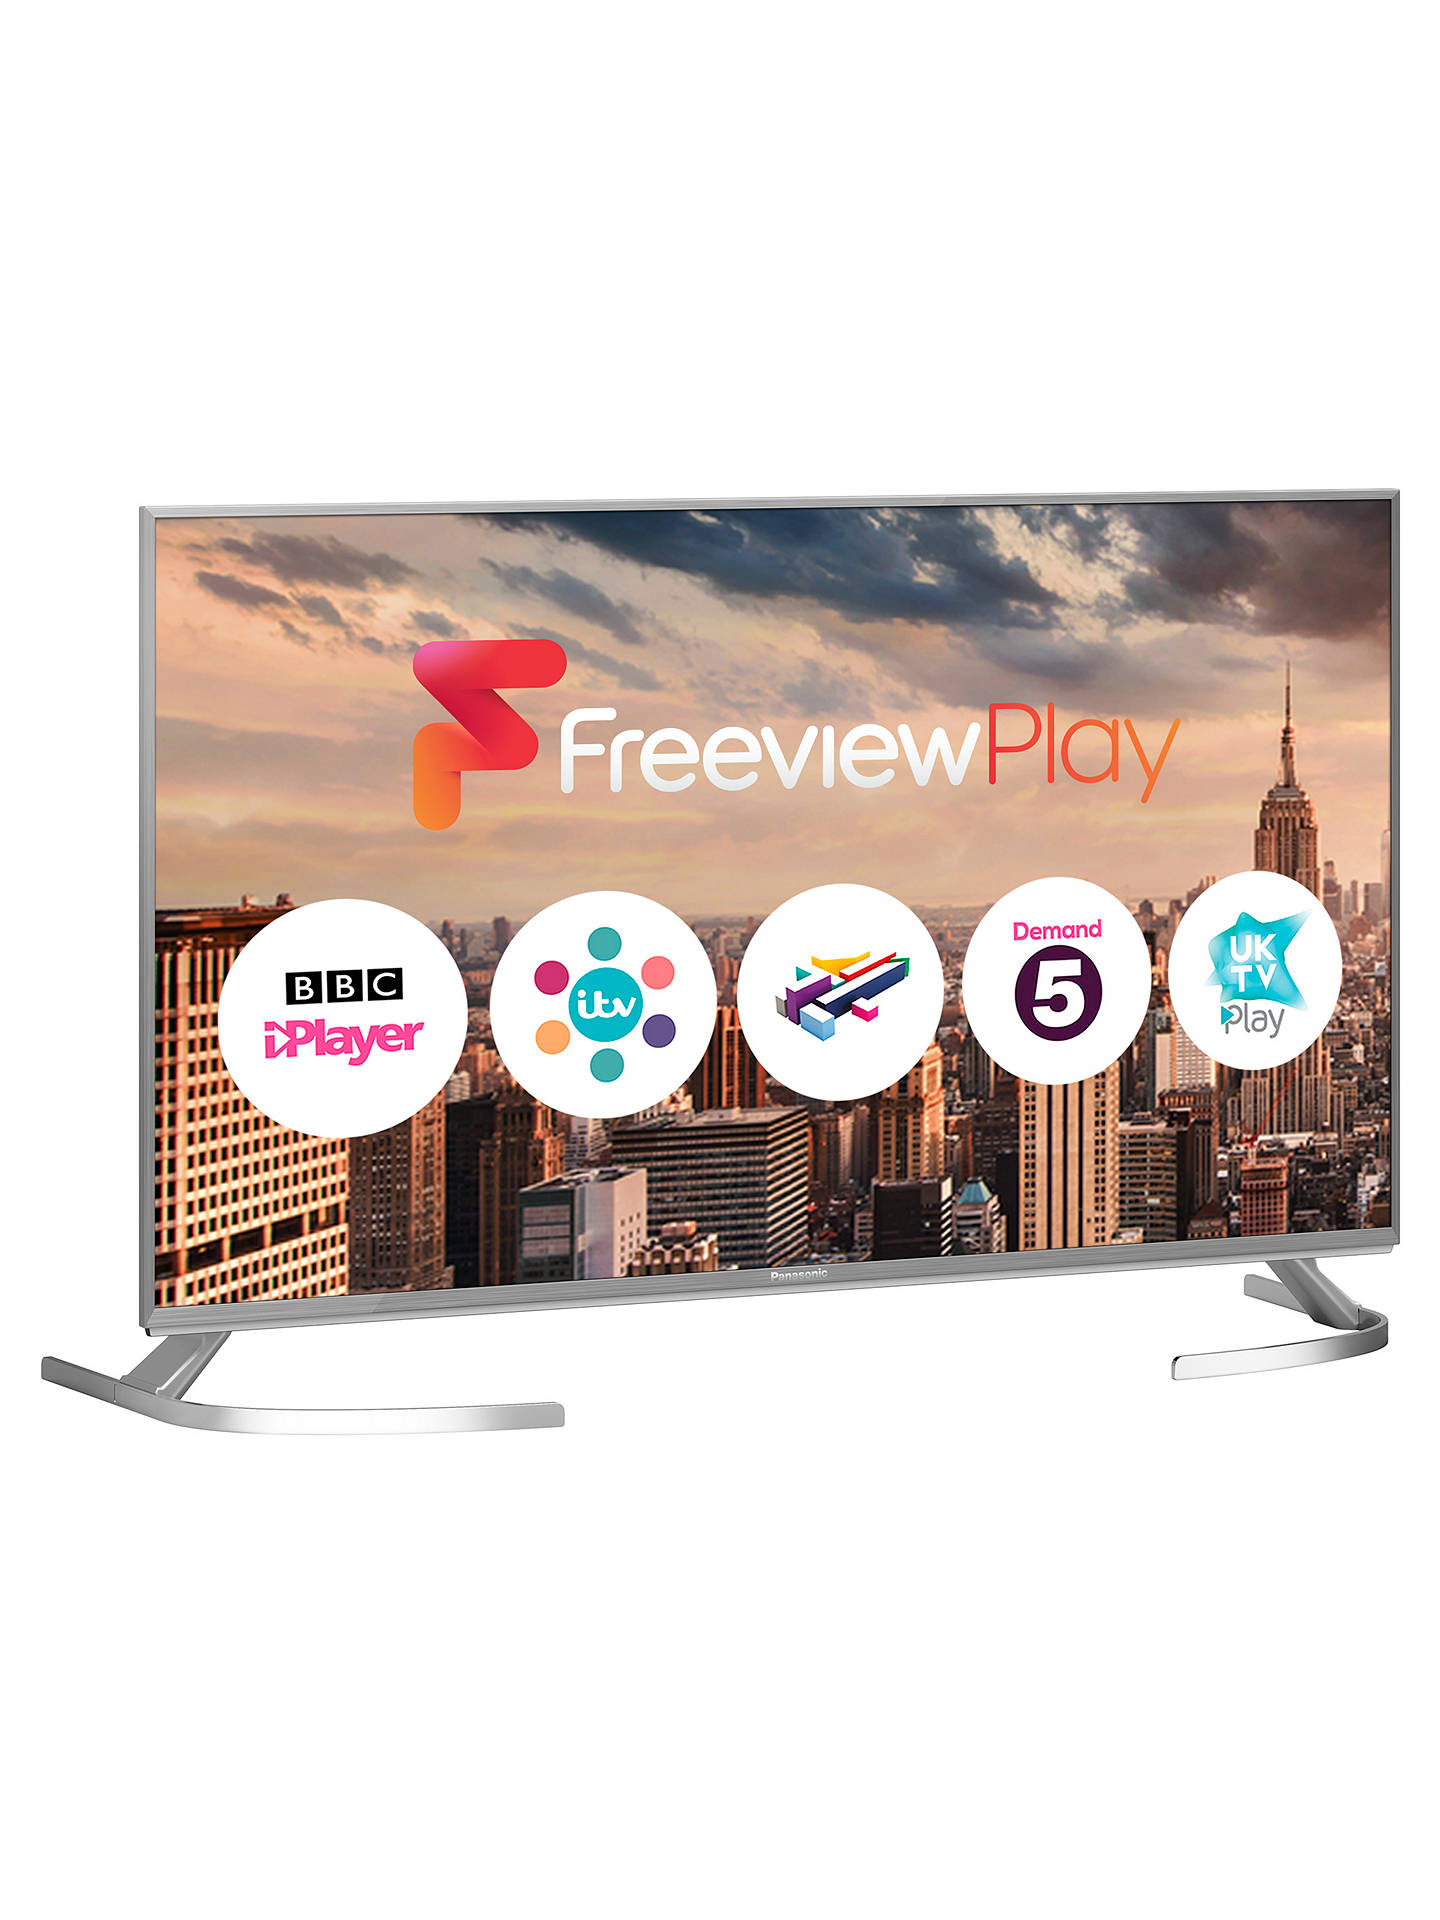 ... BuyPanasonic TX-58EX700B LED HDR 4K Ultra HD Smart TV 696616a3f3c6d